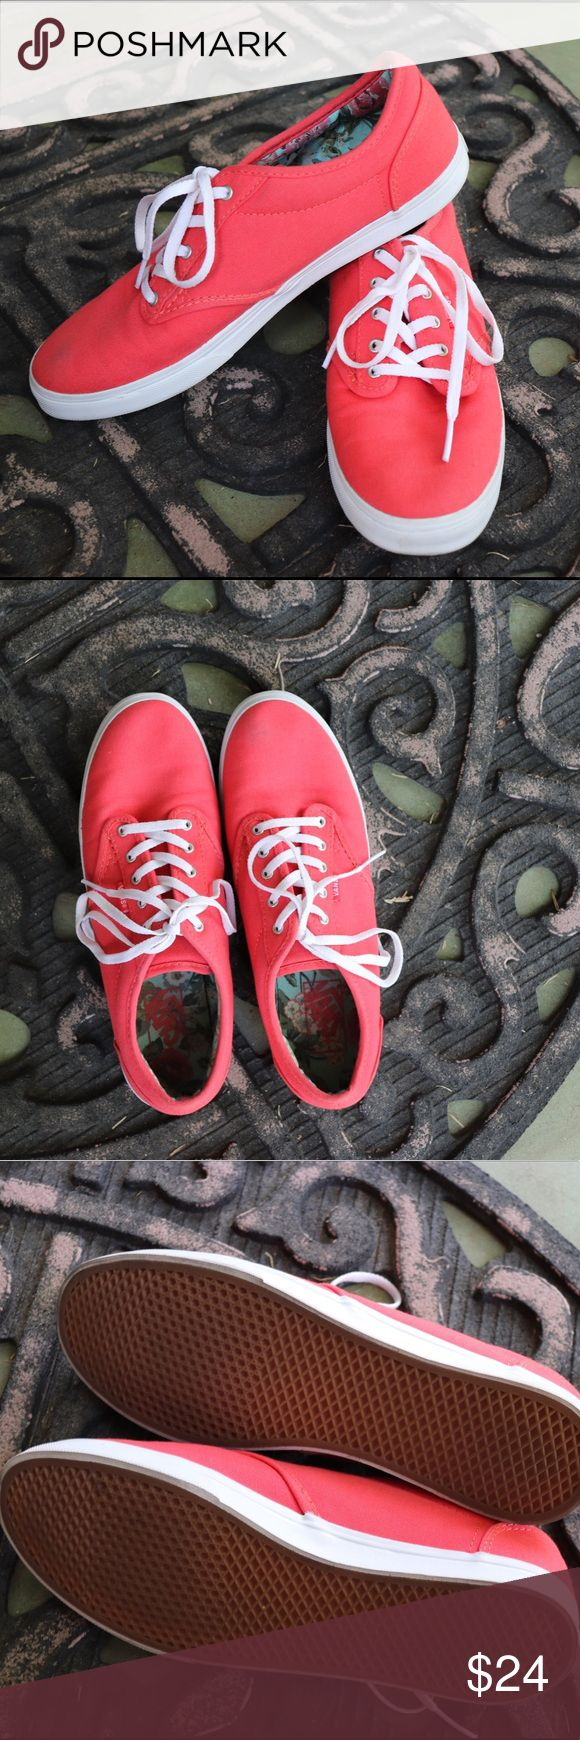 {Vans} Atwood Low Canvas Shoe Bright shoes add fun to any outfit, and these coral vans are perfect classics for everyday wear! Double stitched canvas, metal eyelets, and signature rubber waffle outsoles ensure these vans are quality, and will last a long time!  Small dirt stain on exterior of right shoe, could probably come out in the washing machine. Vans Shoes Sneakers